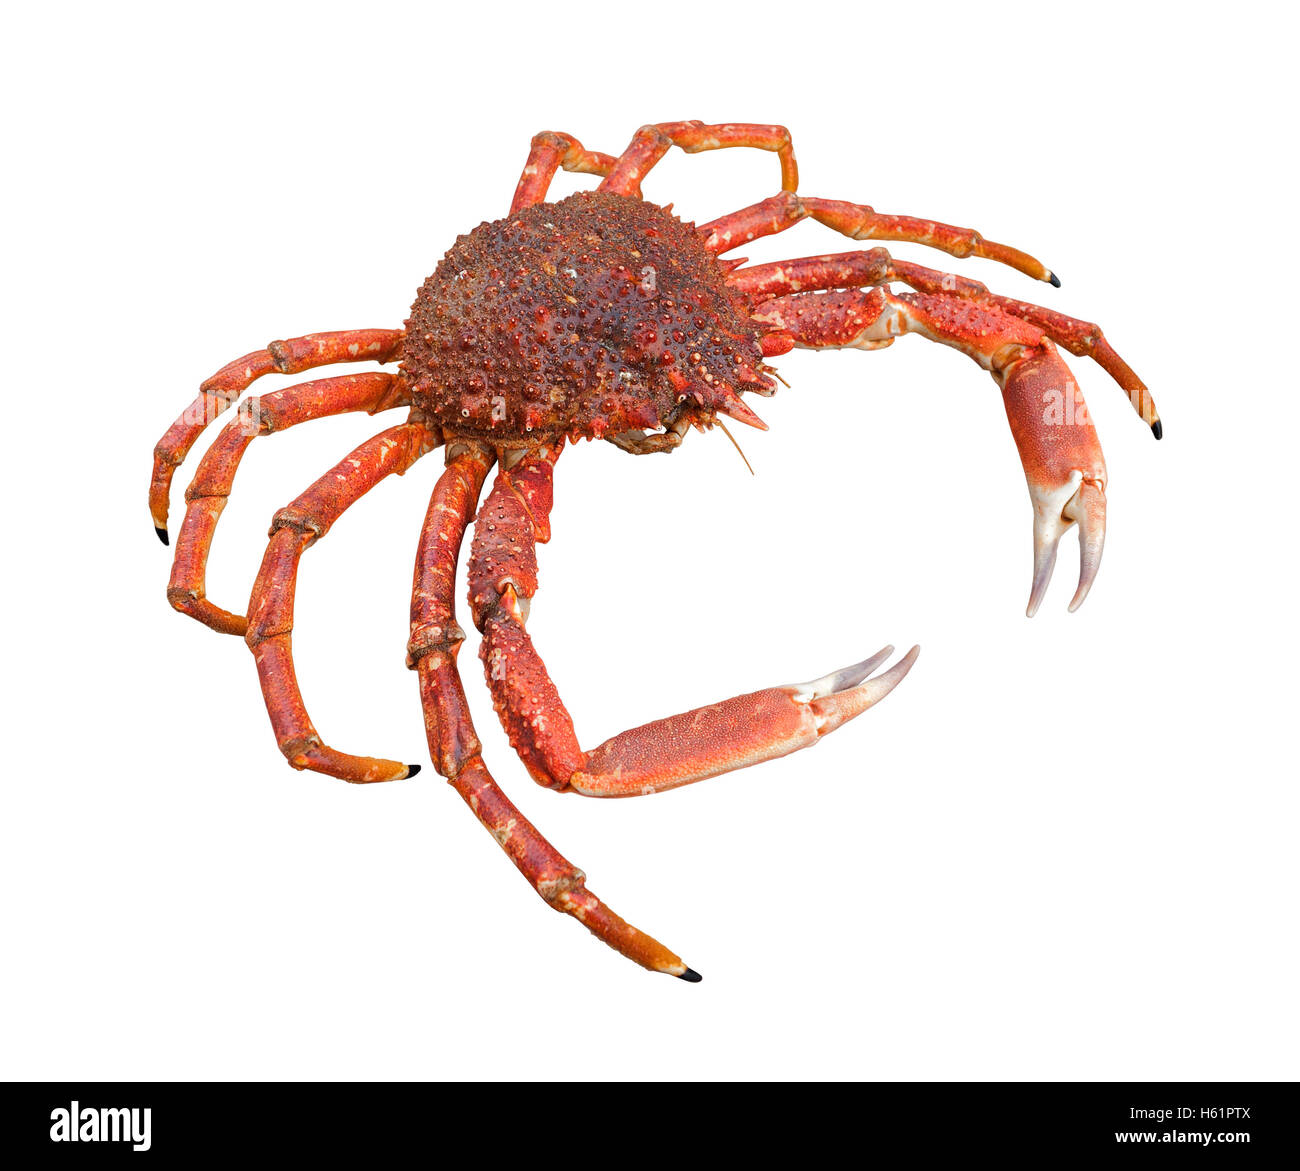 a european spider crab in white back - Stock Image